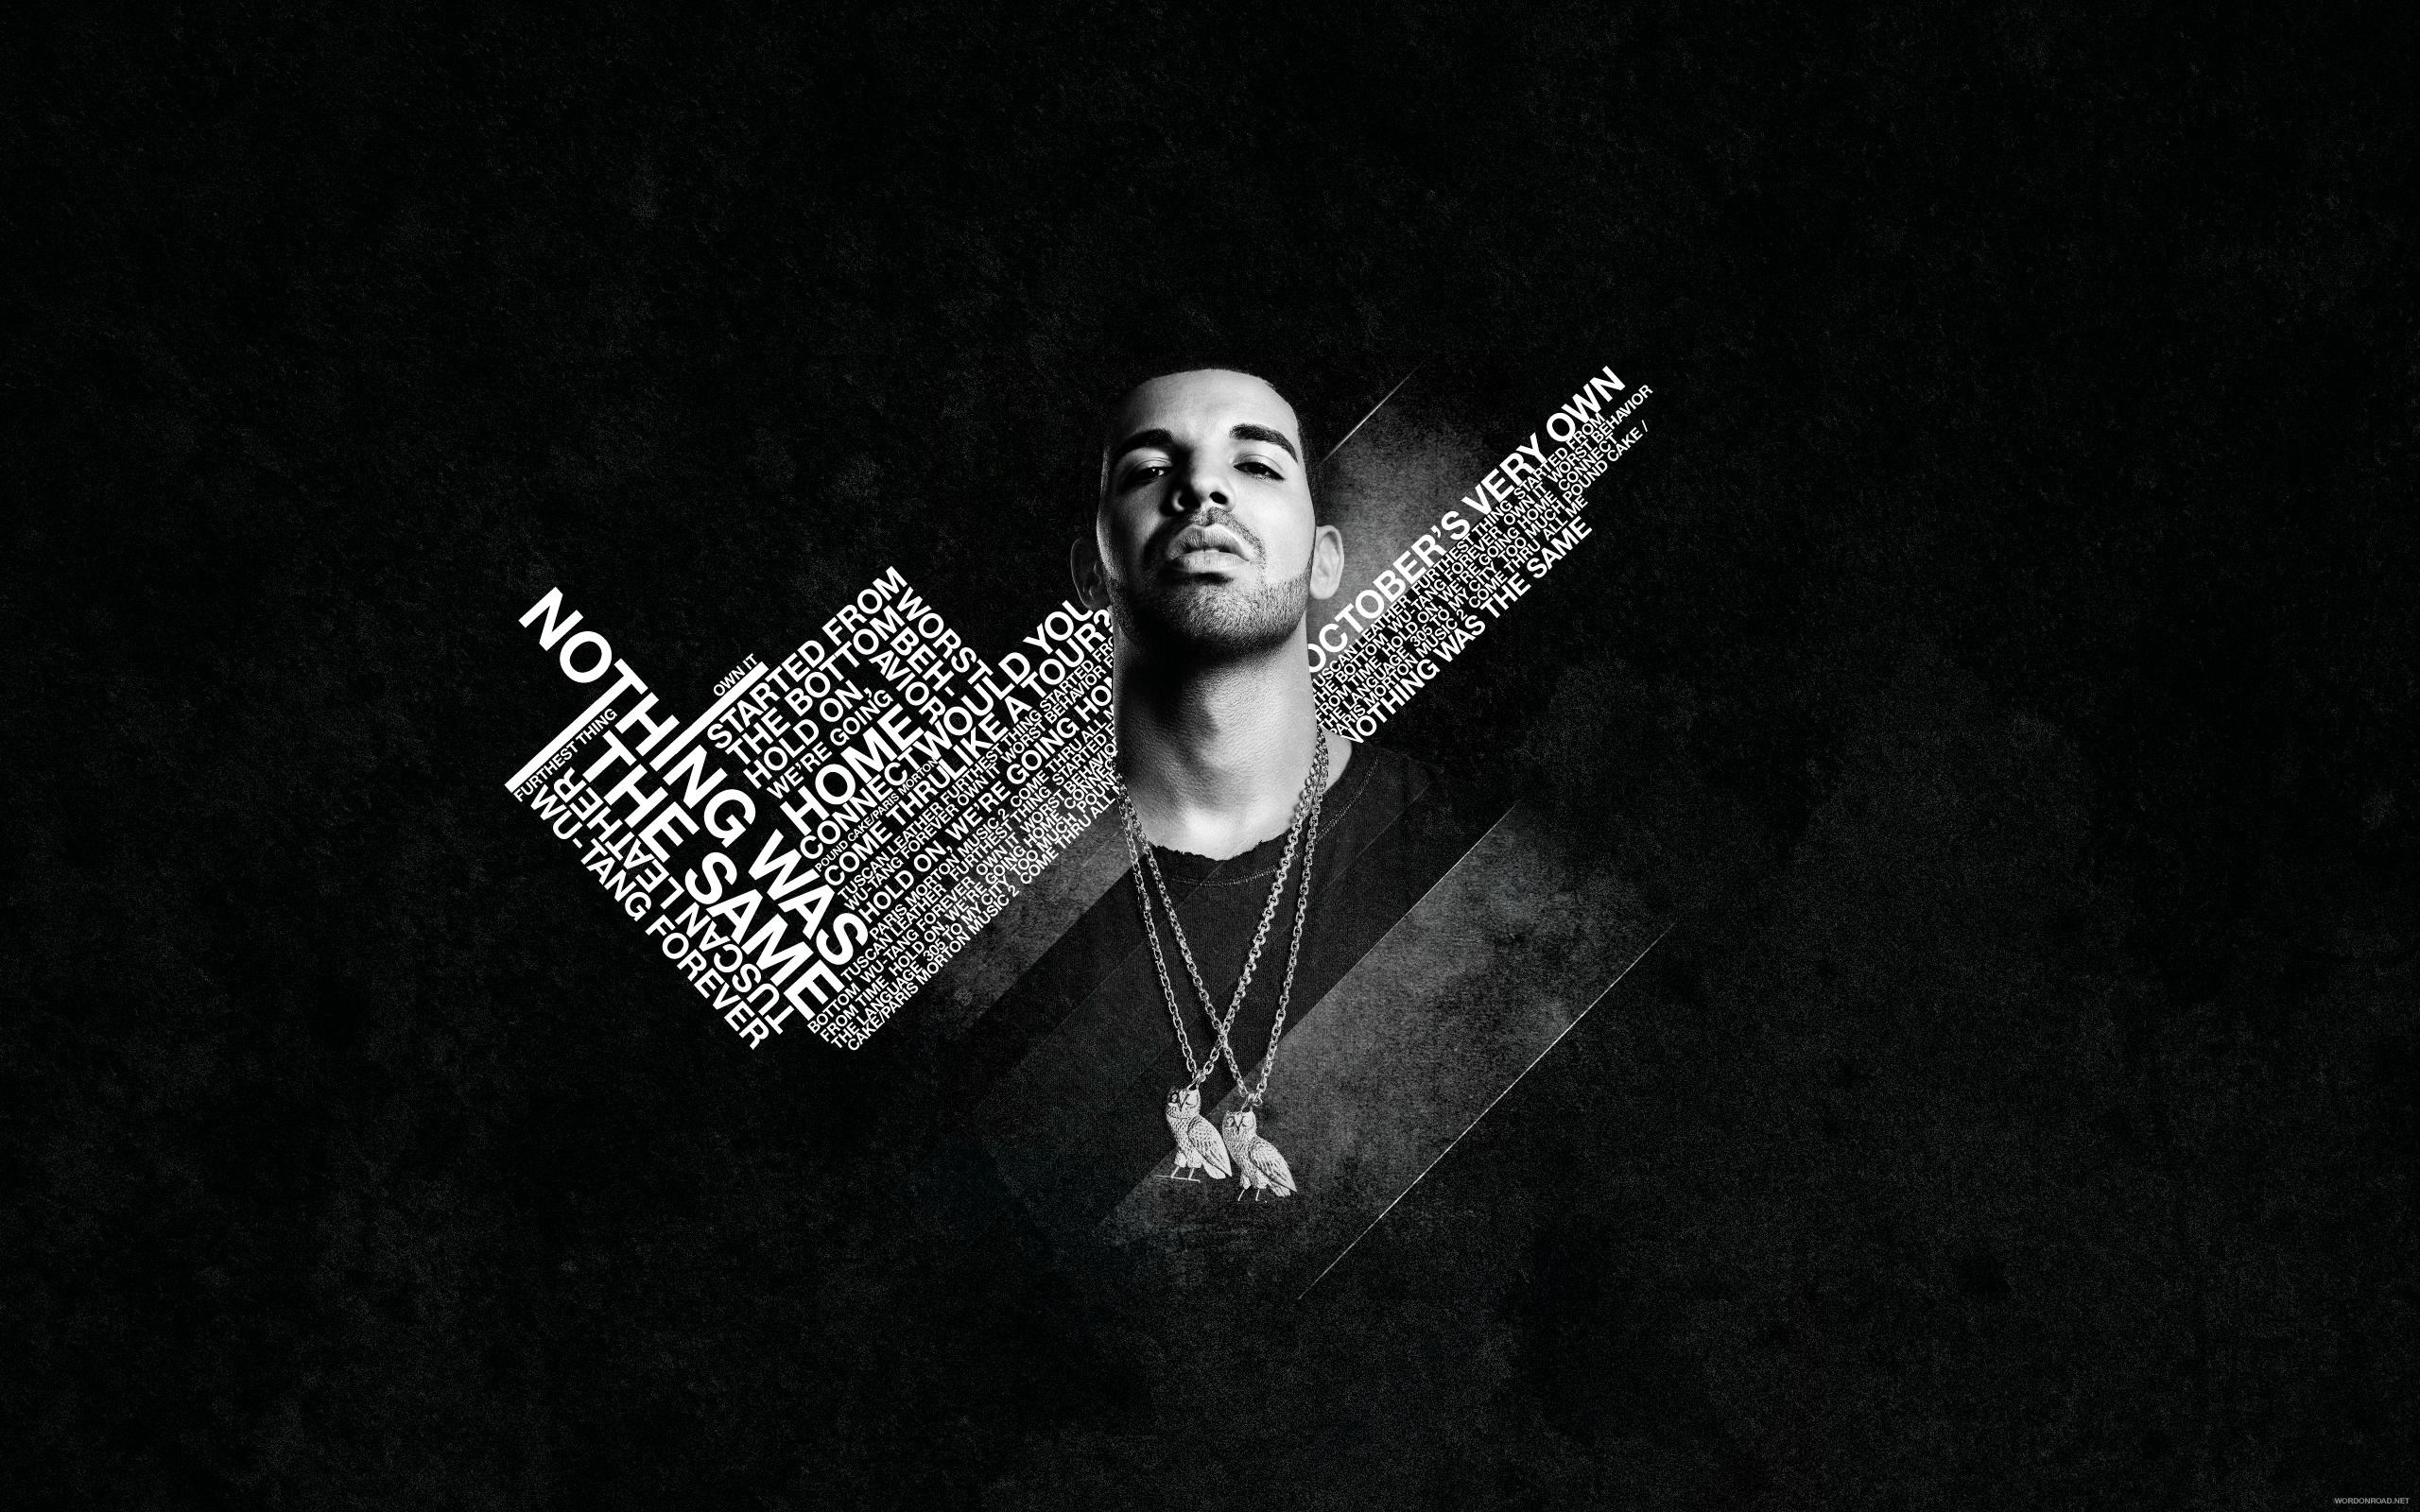 2560x1600 Drake Wallpapers 1080p On Wallpaper Hd 2560 x 1600 px 1.2 MB rapper iphone  owl 2016